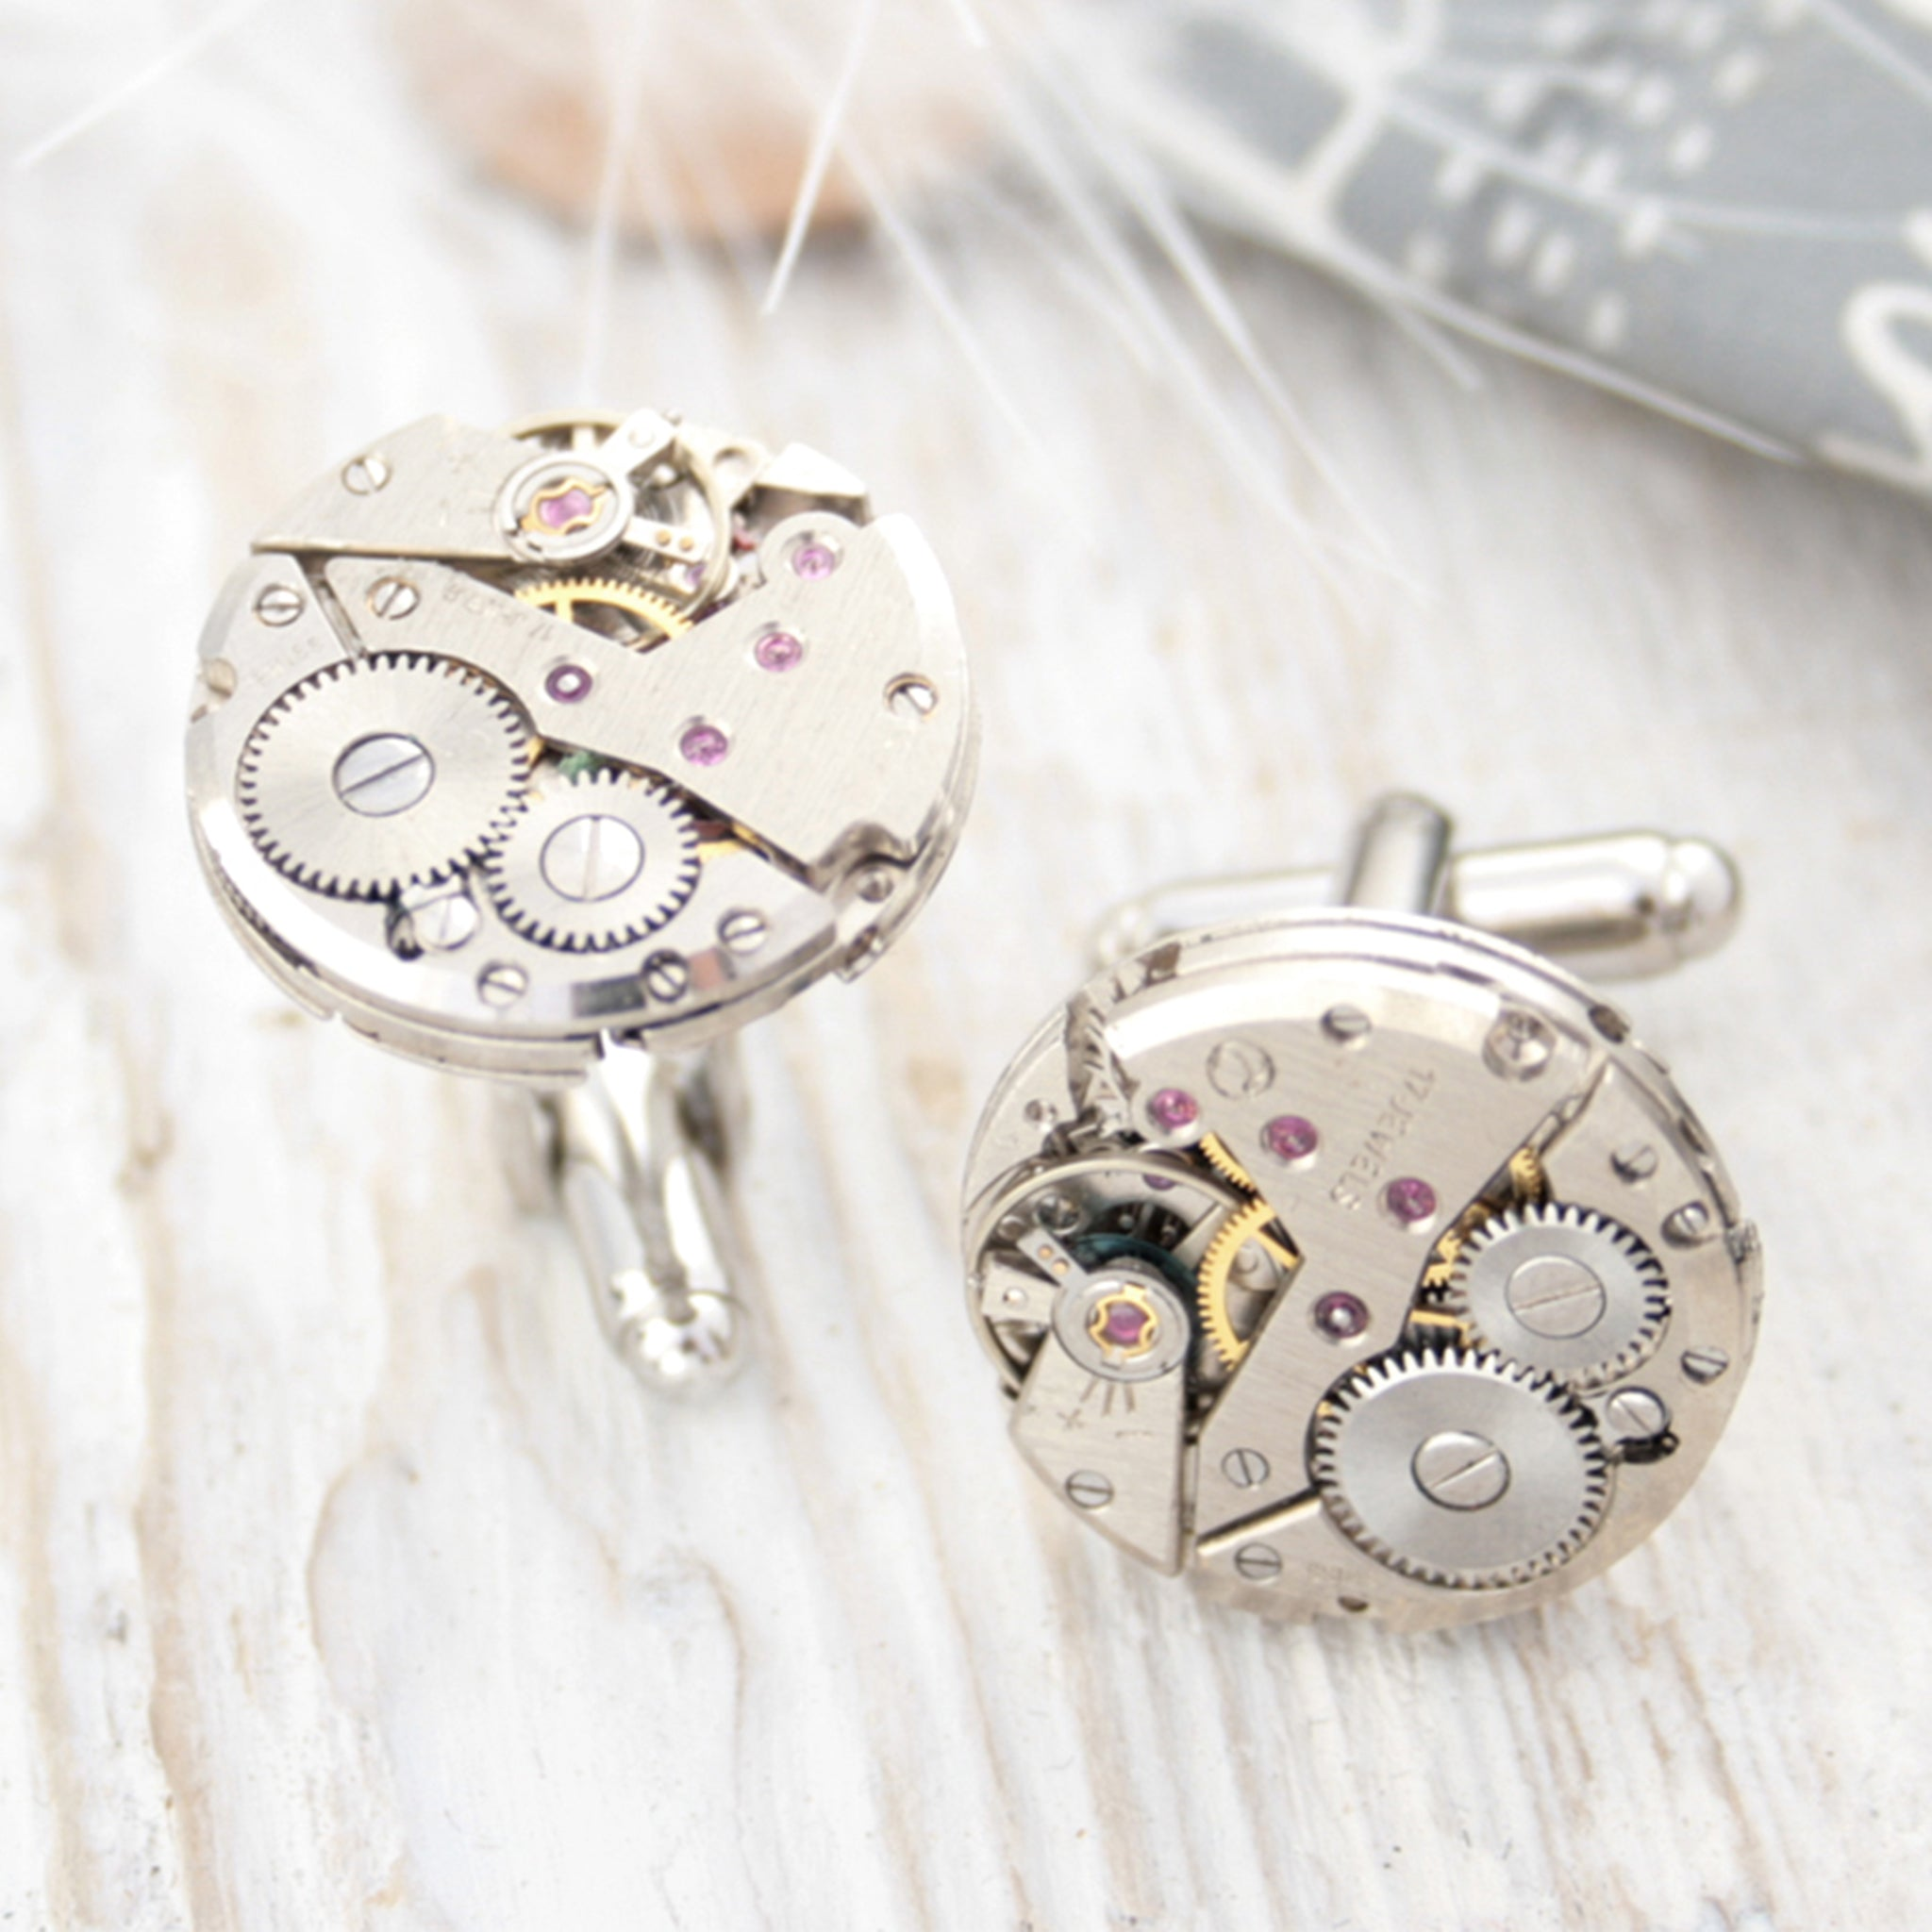 cool cufflinks for watch lovers featuring antique watch movements